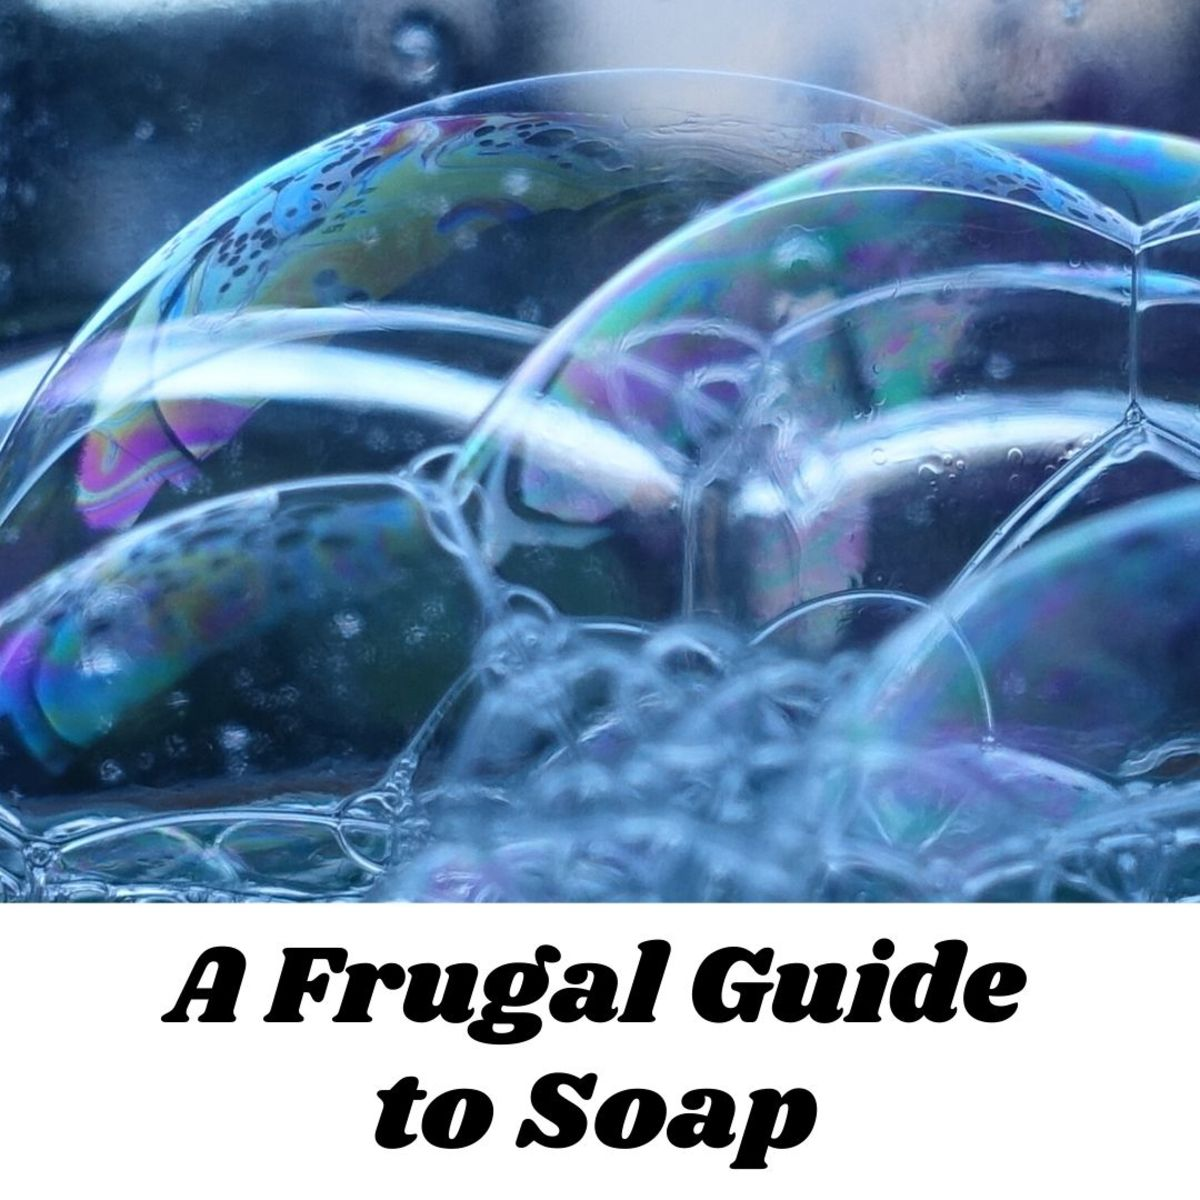 Learn all about soaps and cleaners you need on a budget